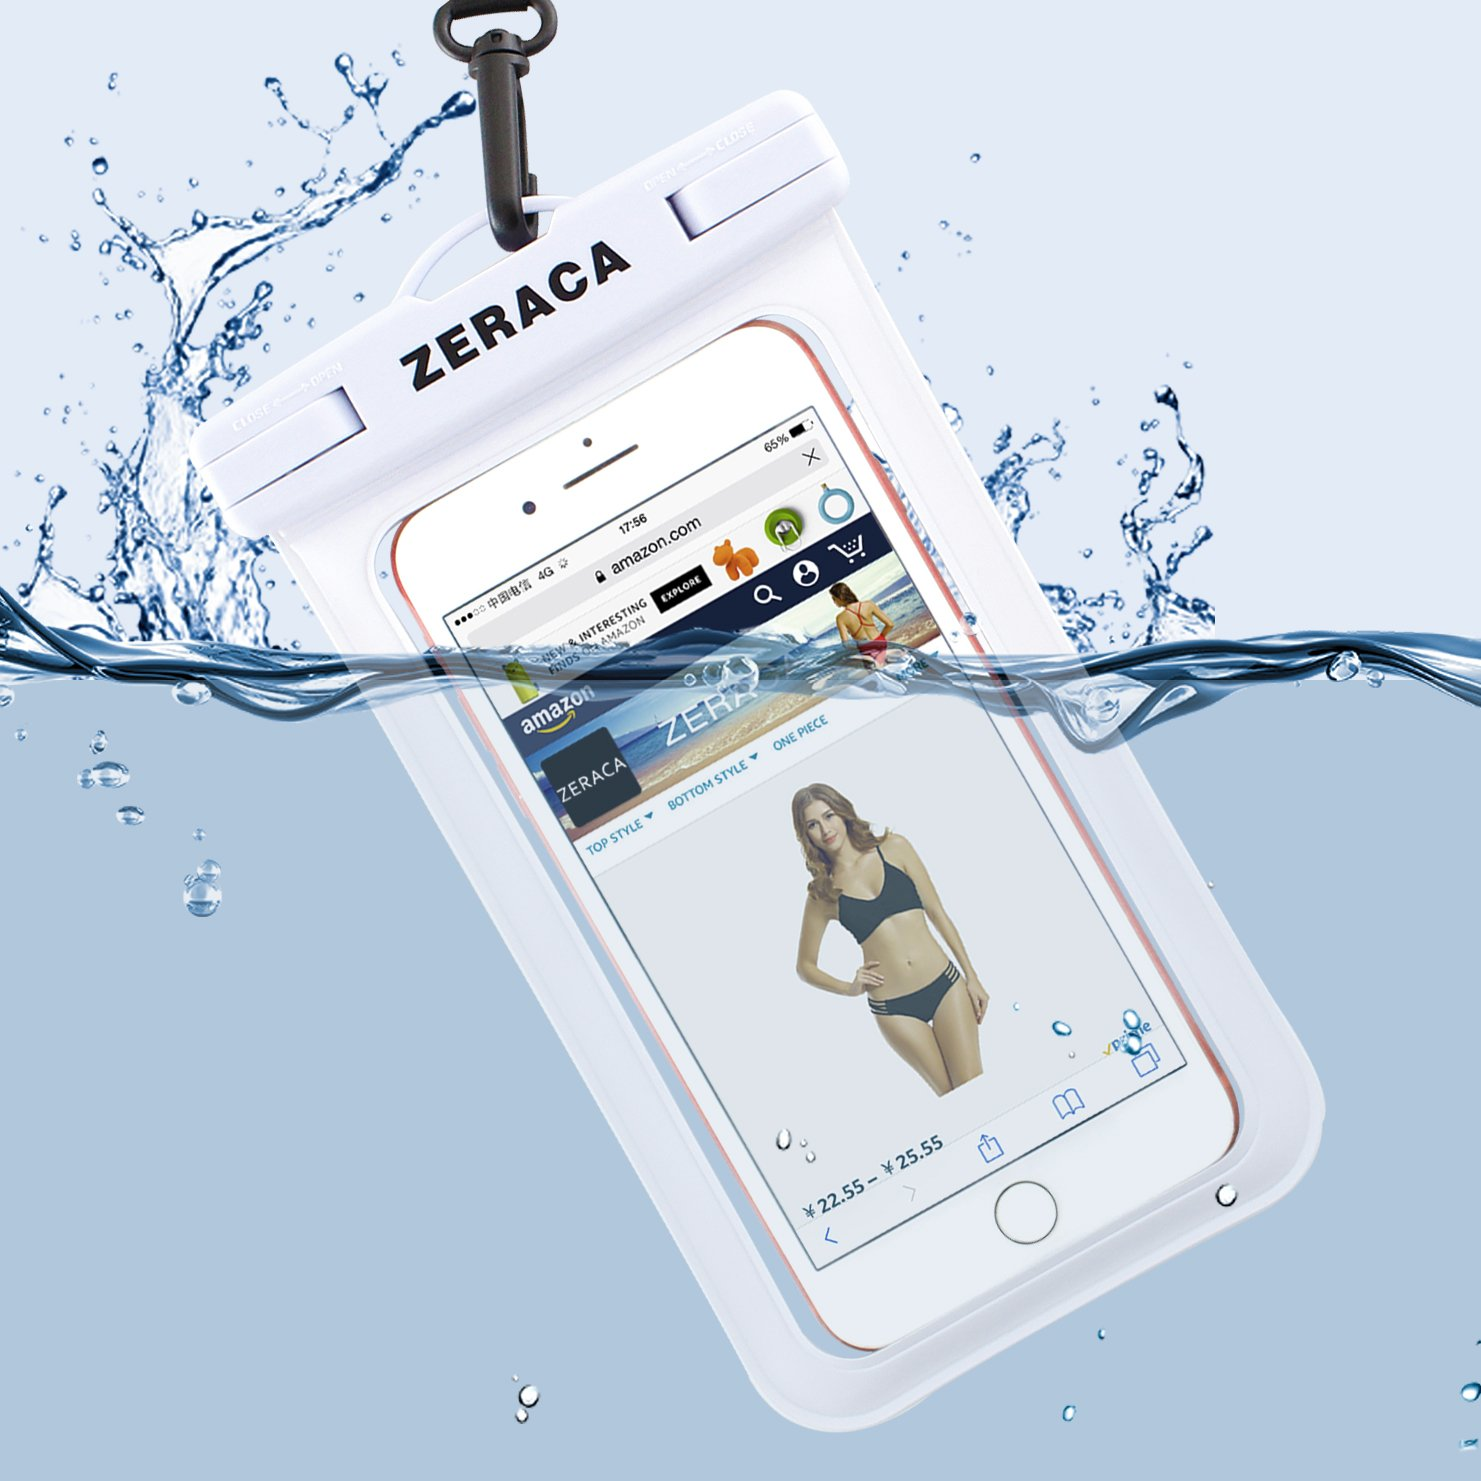 Zeraca Universal Waterproof Case IPX8 Phone Pounch Dry Bag for iPhone 8 8Plus 7 7Plus 6 6s Plus Samsung Google Pixel HTC LG Huawei Up To 6.0 Inches 2 PACK (Black White) by zeraca (Image #4)